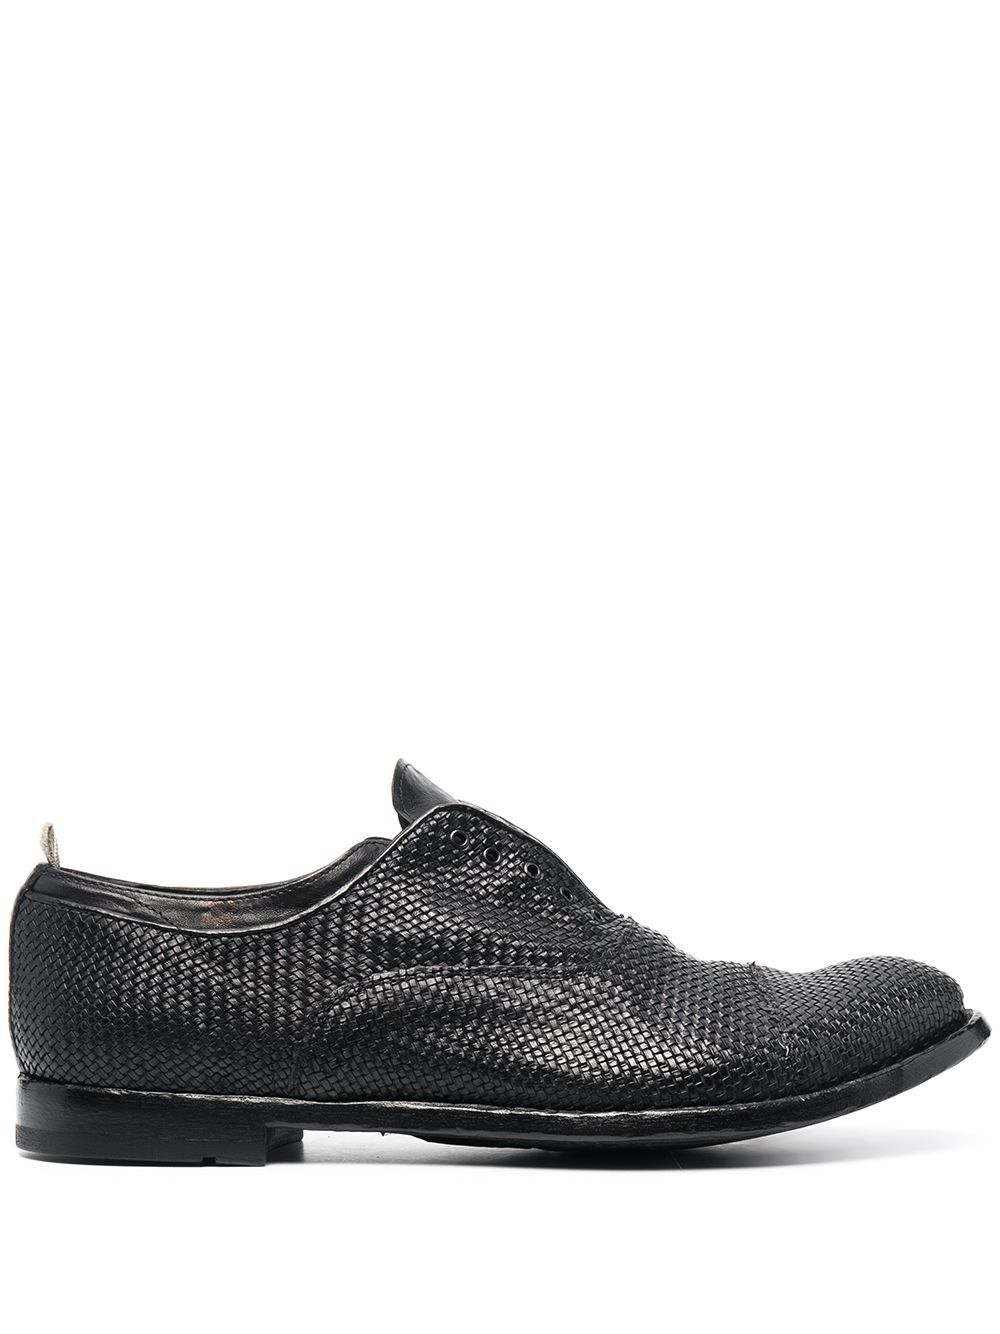 Officine Creative Leathers OFFICINE CREATIVE MEN'S OCANATO043CANG2D153 GREY LEATHER LACE-UP SHOES